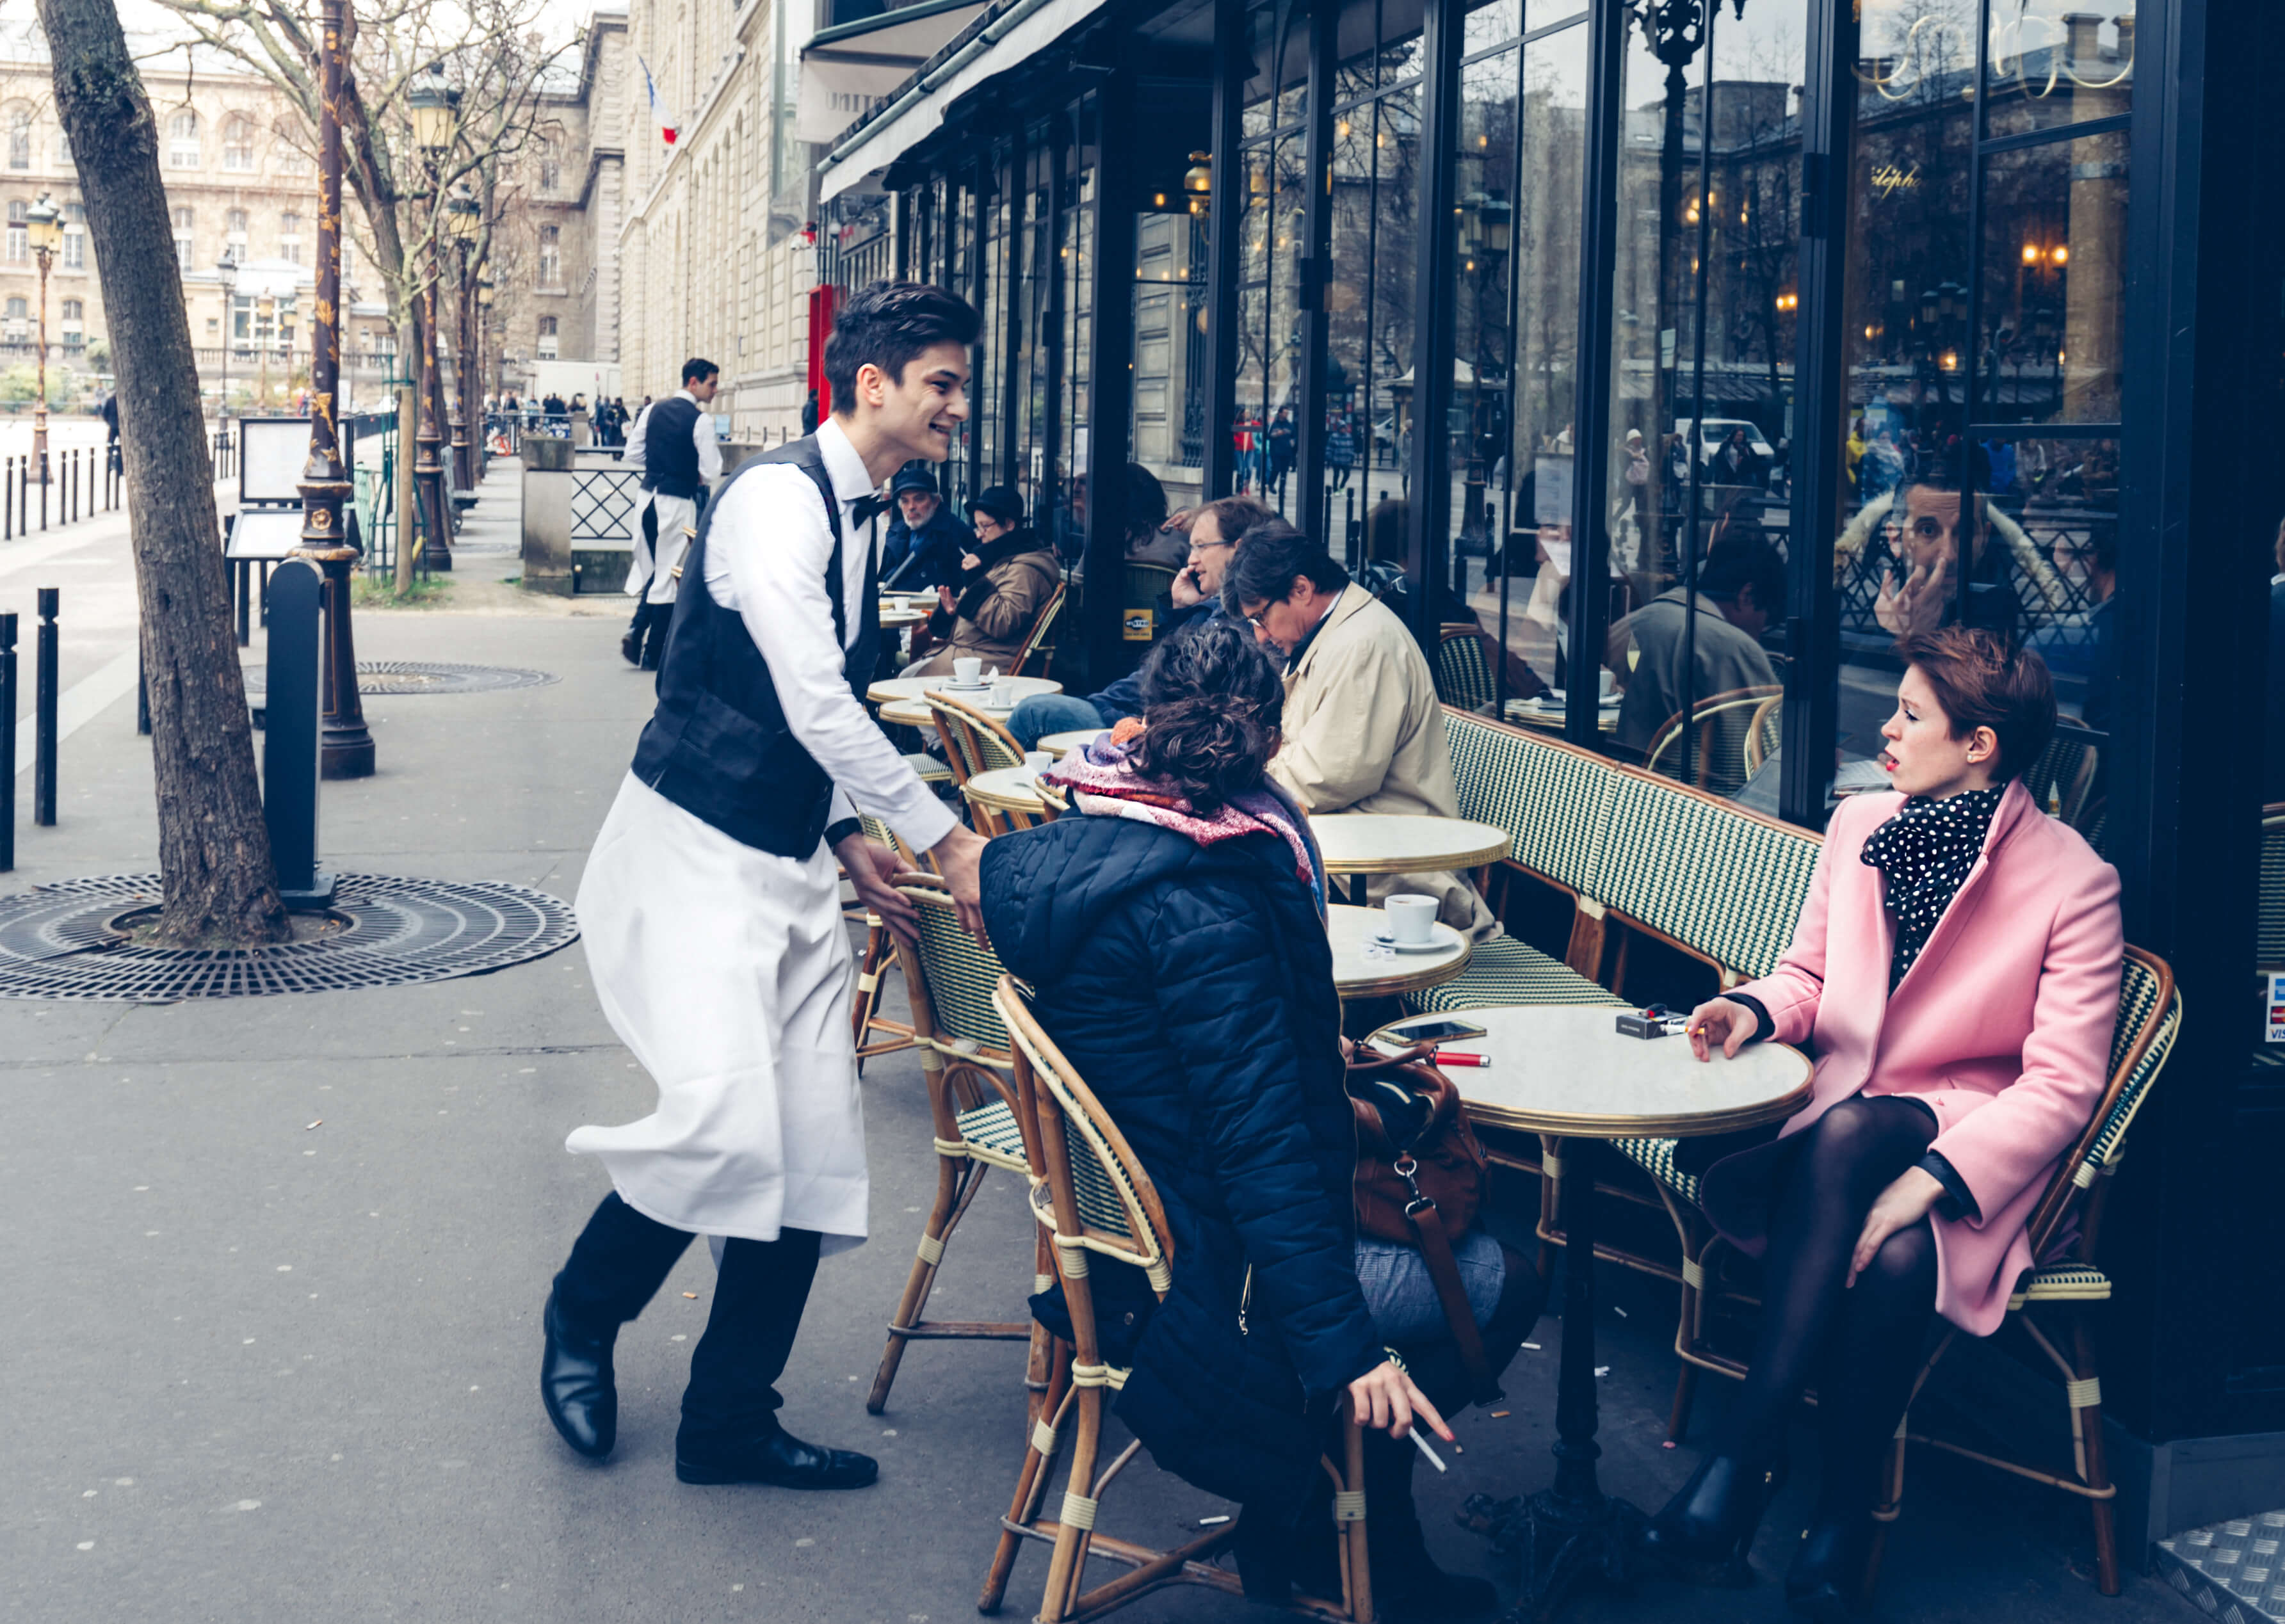 THE FRENCH CAFE STARS IN ALL PARIS TRIPS